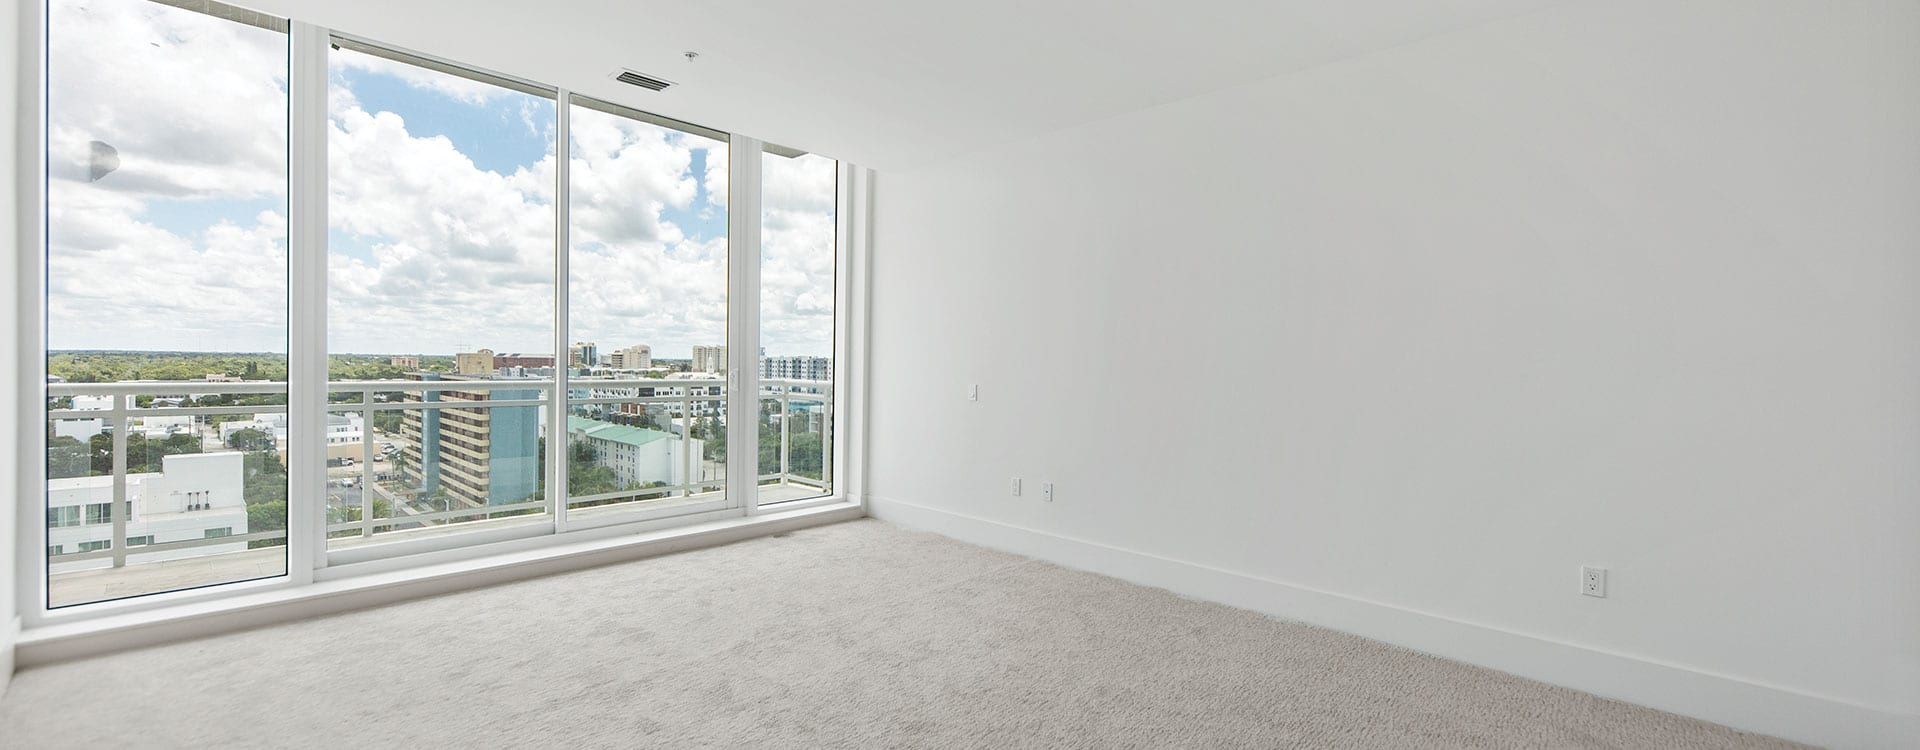 Blvd Residence 1102 Bedroom looking out to downtown sarasota